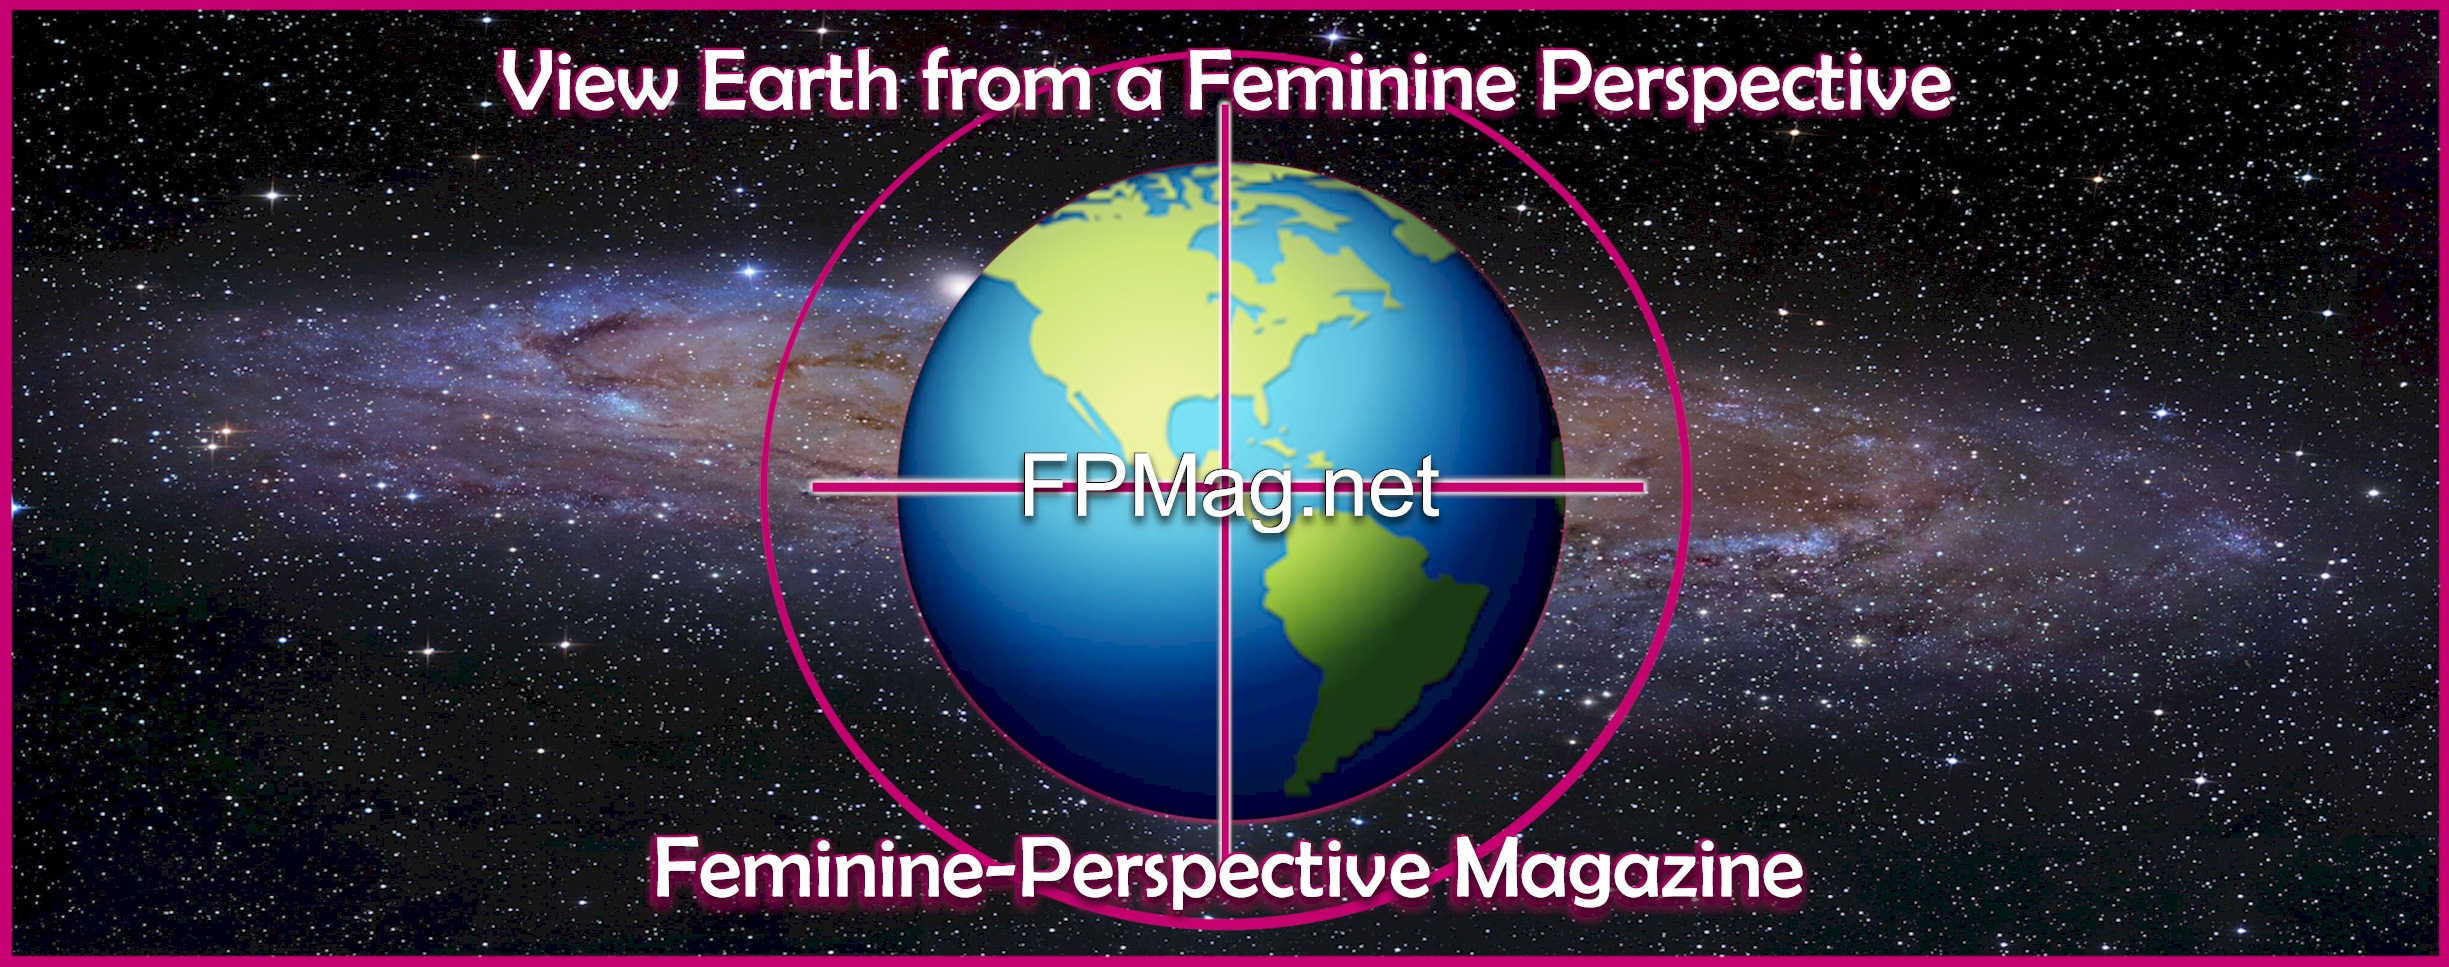 "FPMag.net - Feminine-Perspective Magazine - Photo Art: by Rosa Yamamoto - ""It's the Milky Way,"" she says. Our Galaxy and our Earth. Let's take them back from the patriarch."